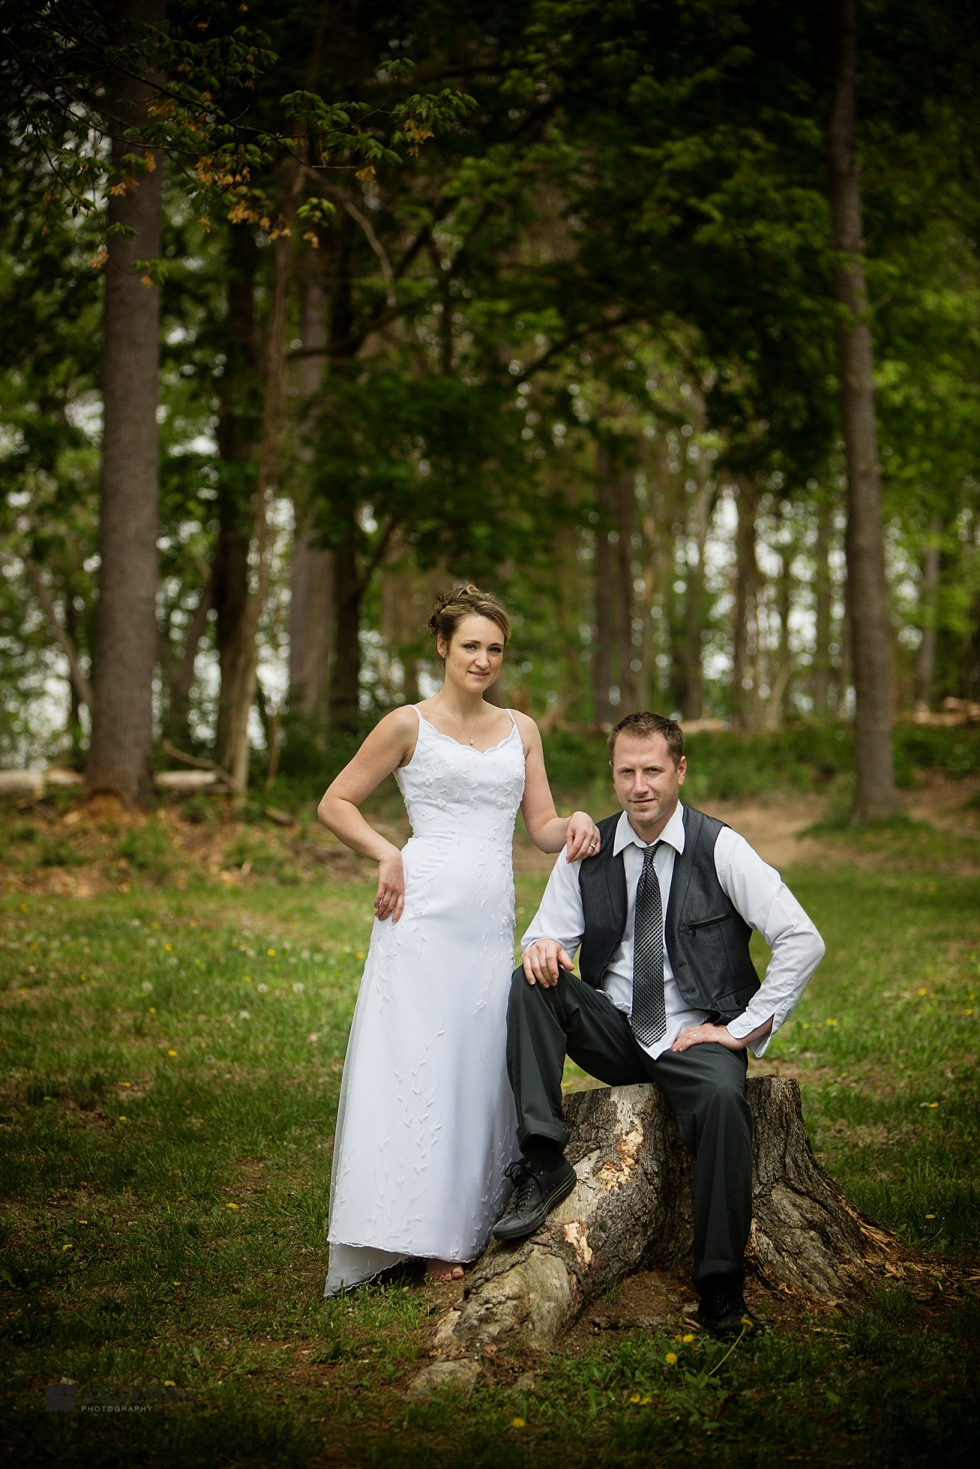 Baltimore Lancaster York Portrait Wedding Photographer Lake Williams Artemas Photography-3